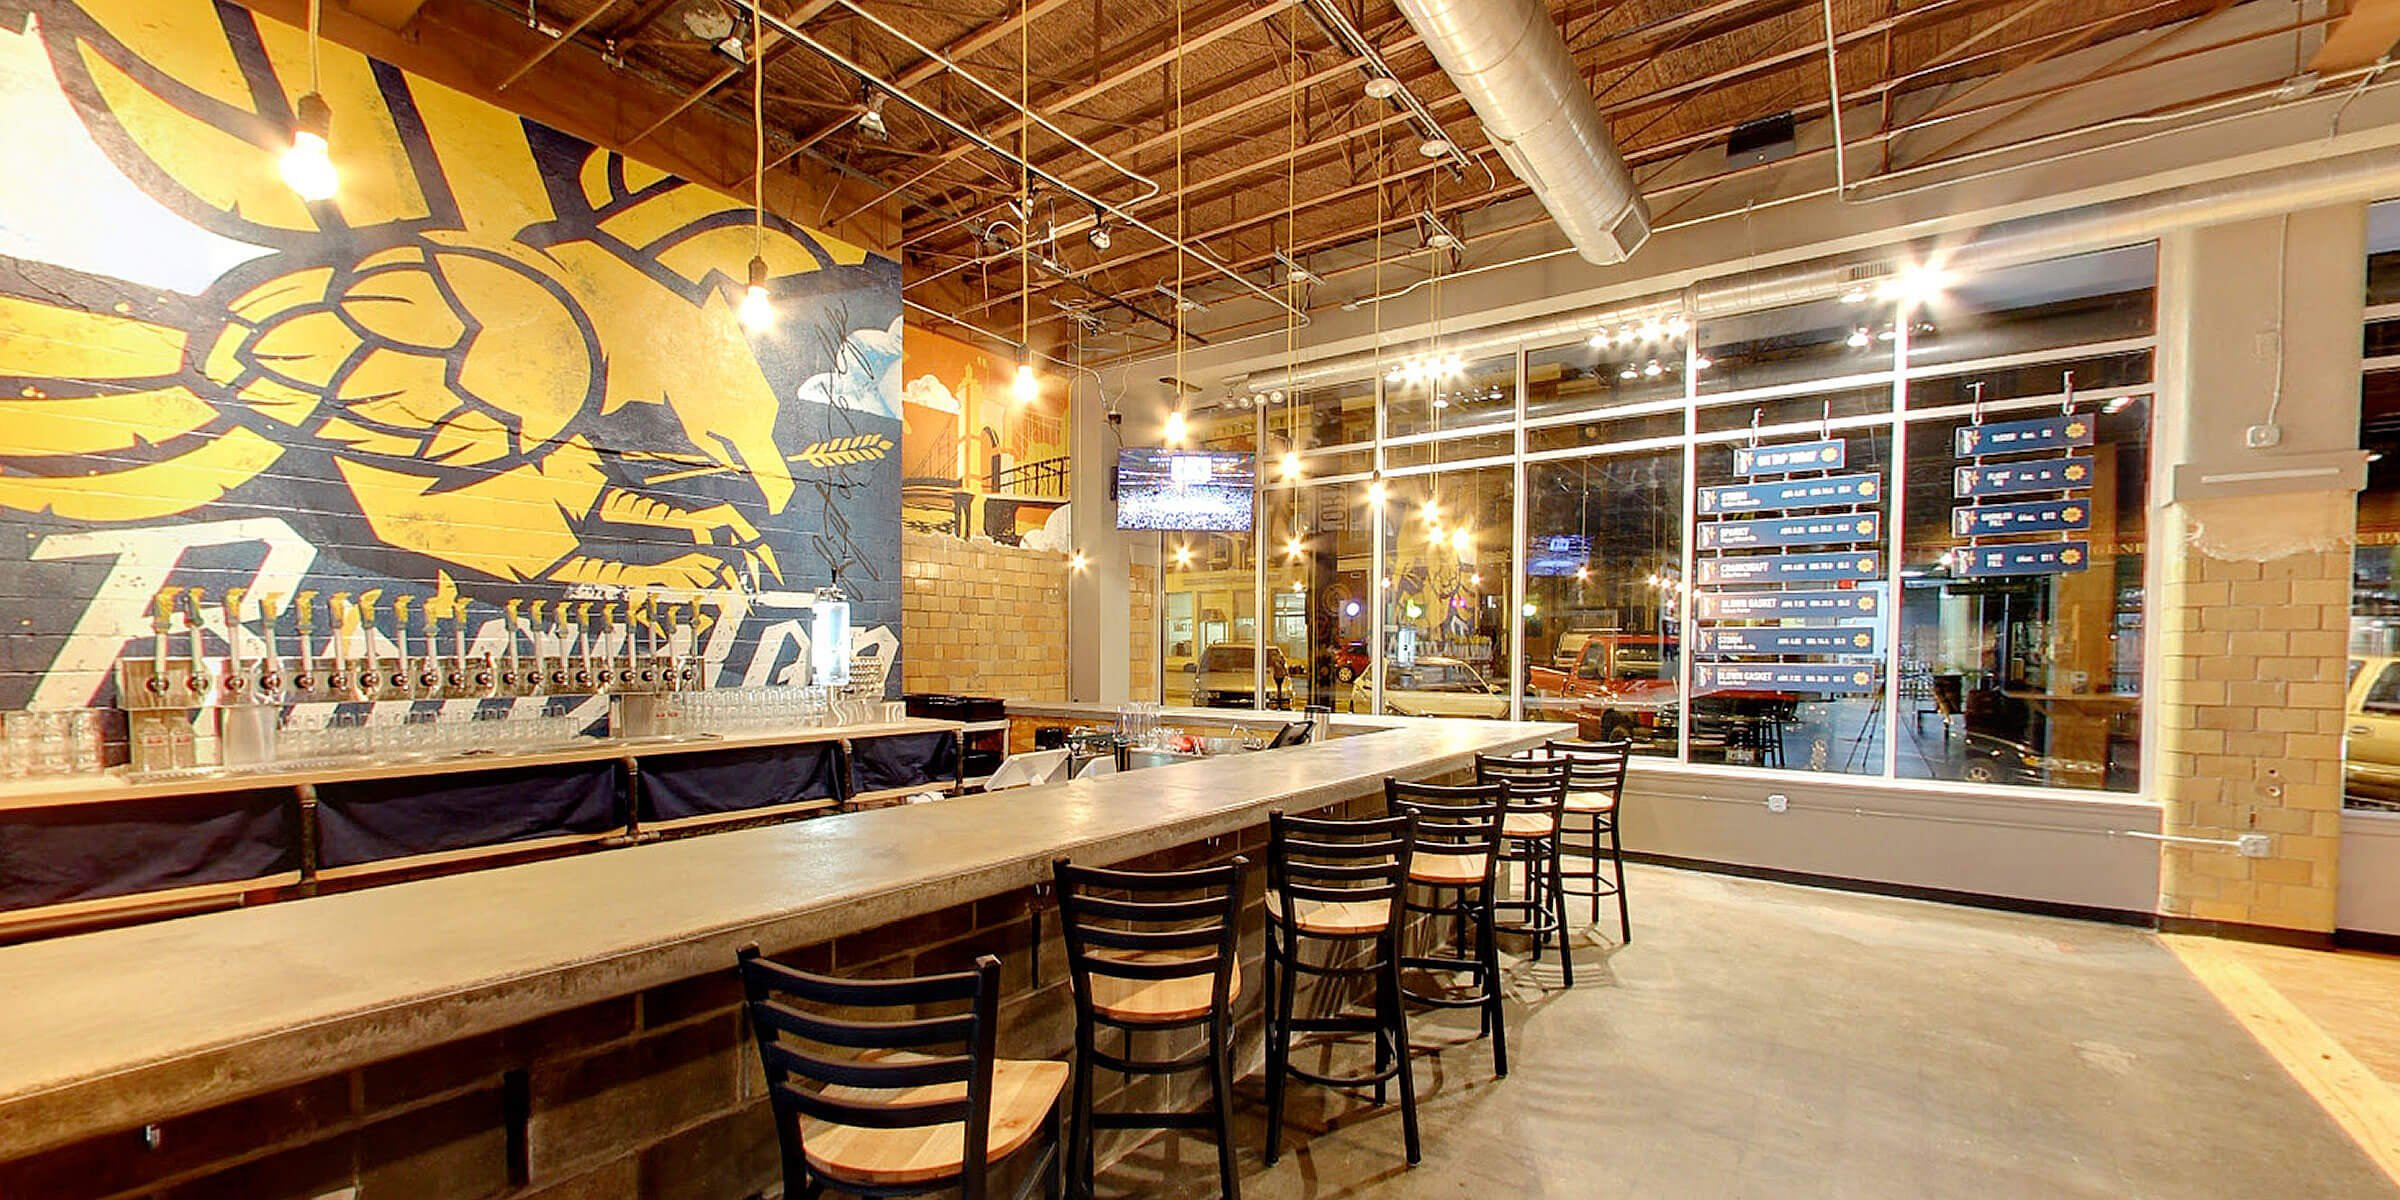 Inside The Taproom at Braxton Brewing Company in Covington, Kentucky